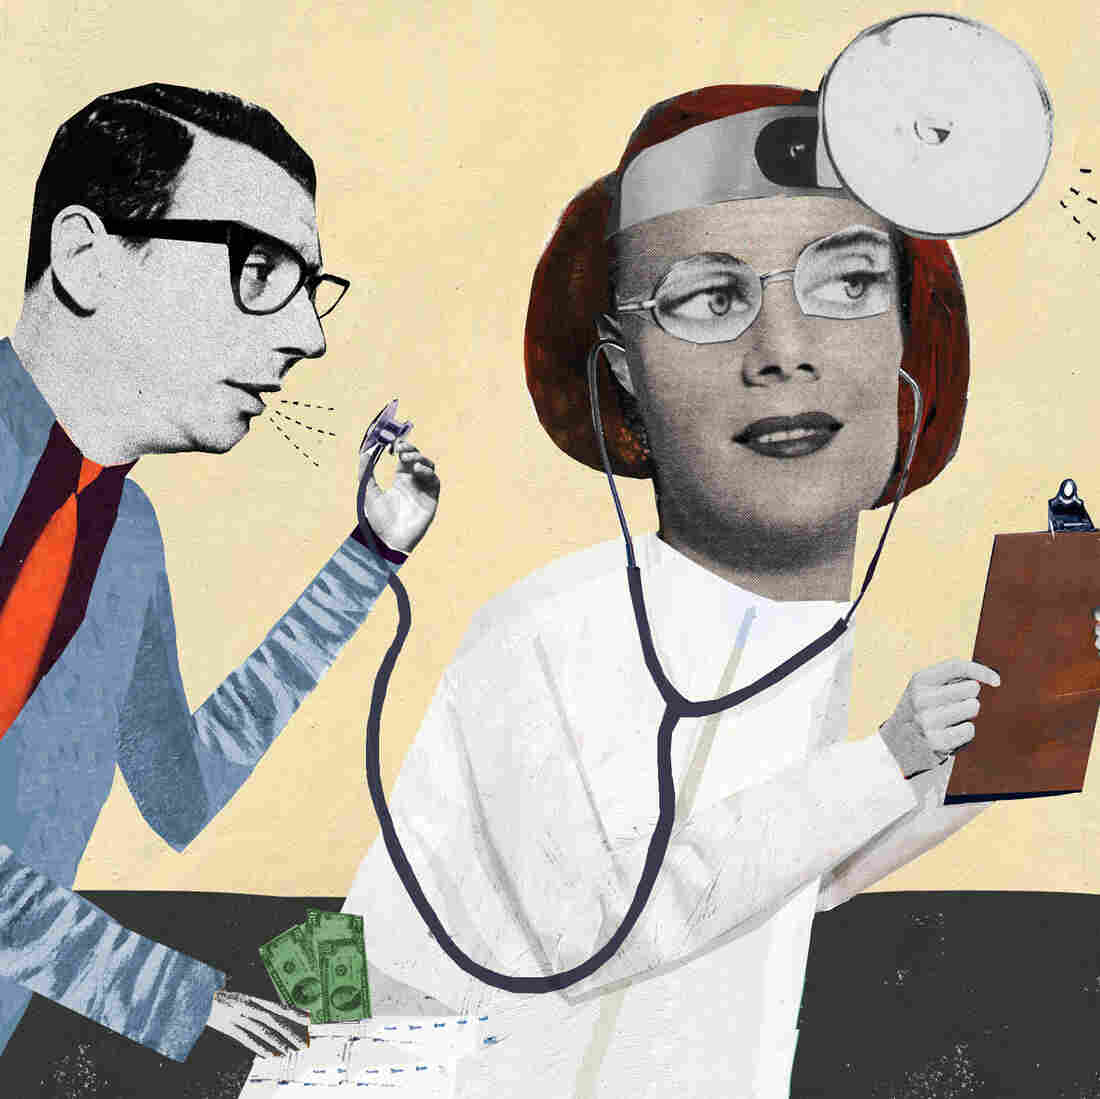 Before The Prescription, Ask About Your Doctor's Finances